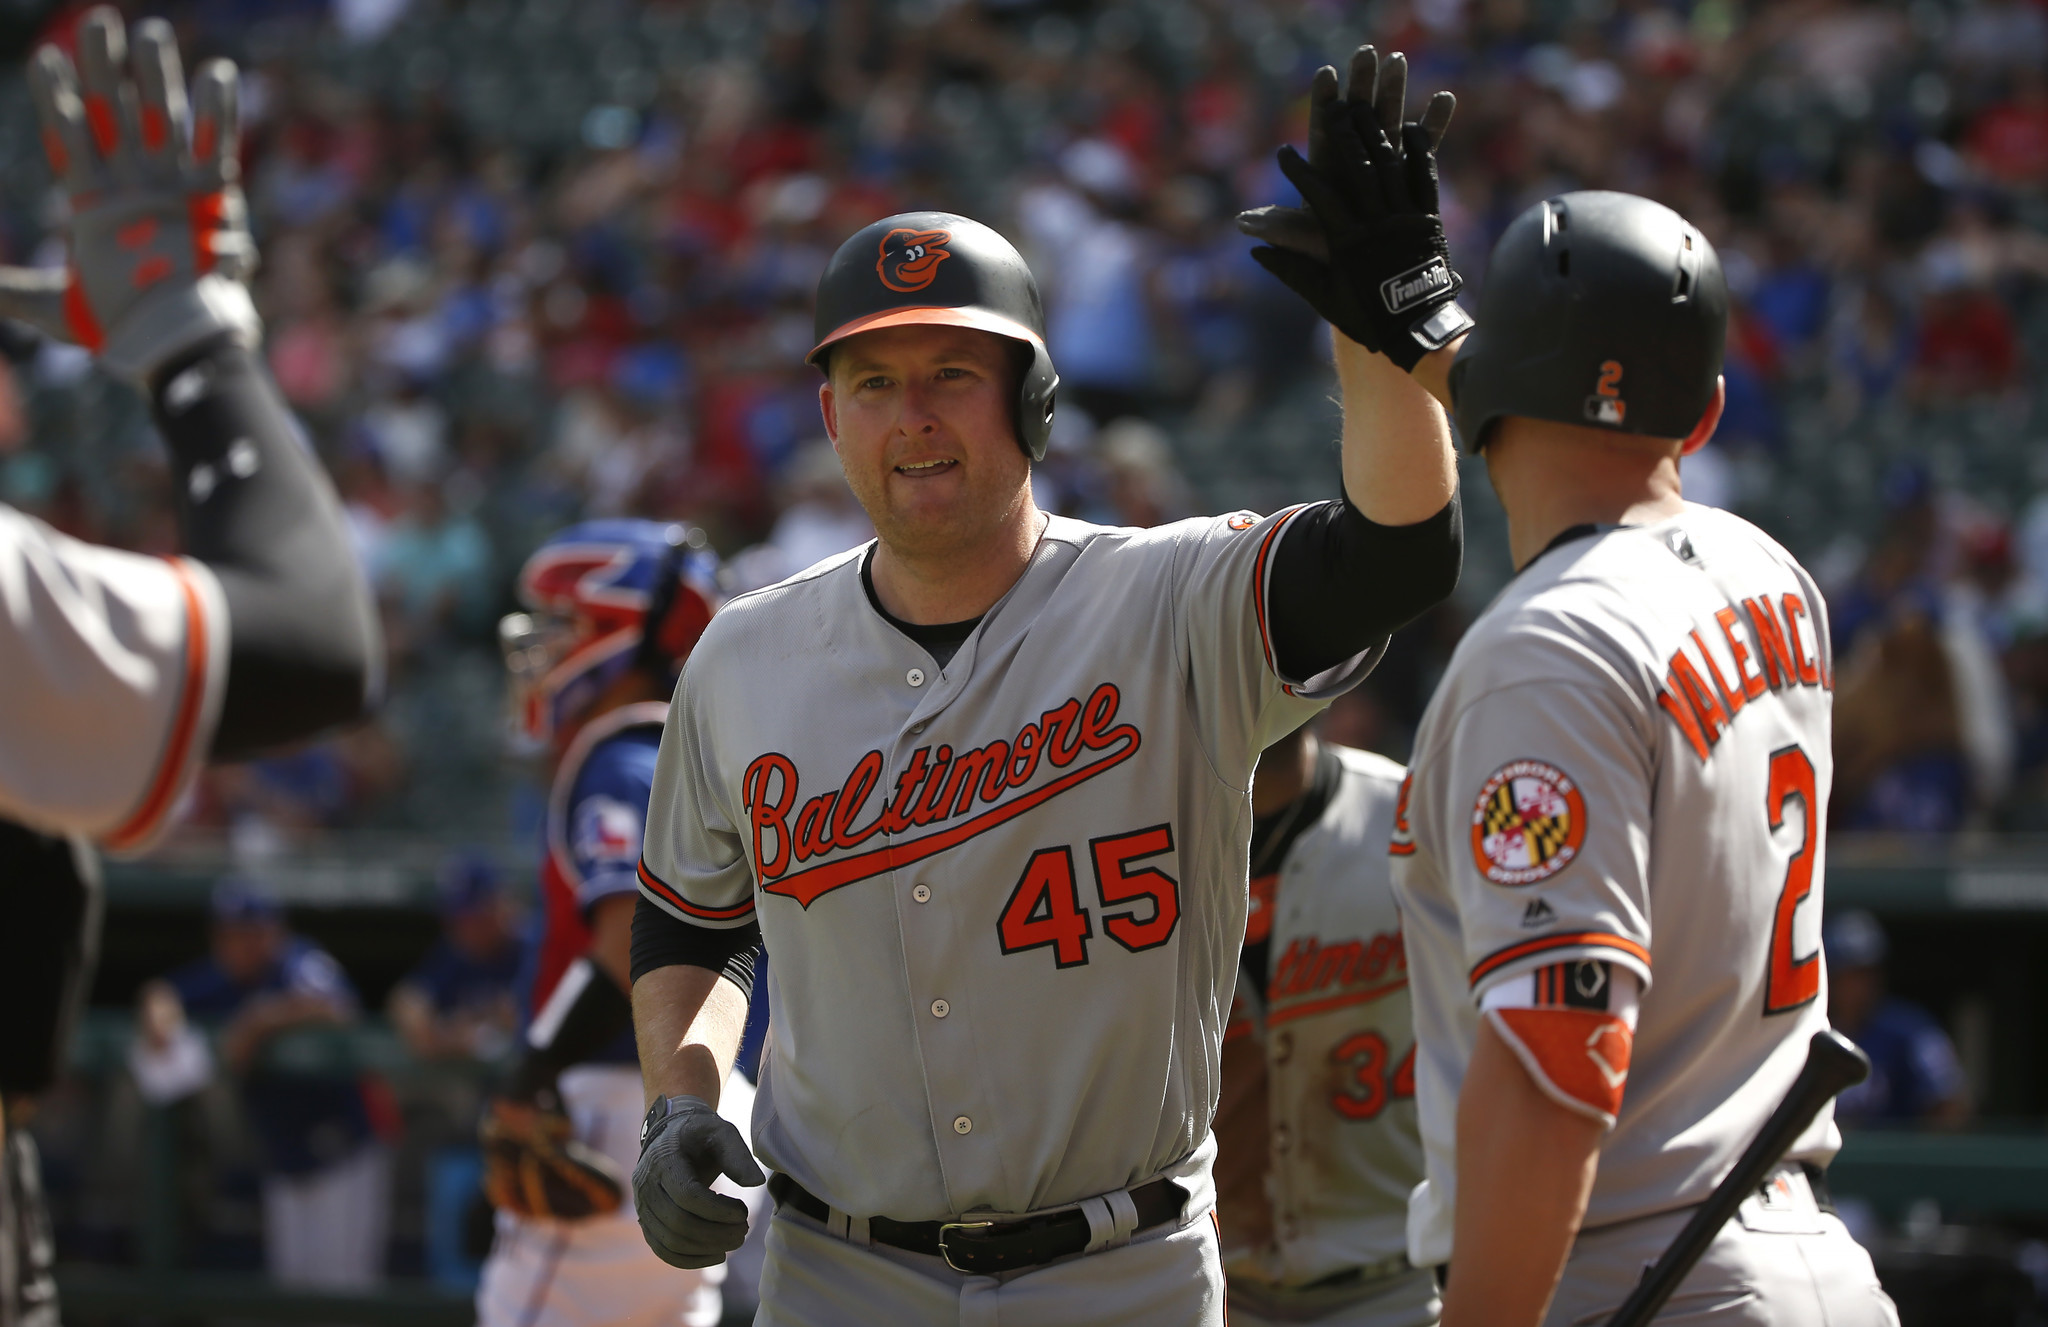 Orioles rewind: Looking back at Sunday's 9-6 win over the ...